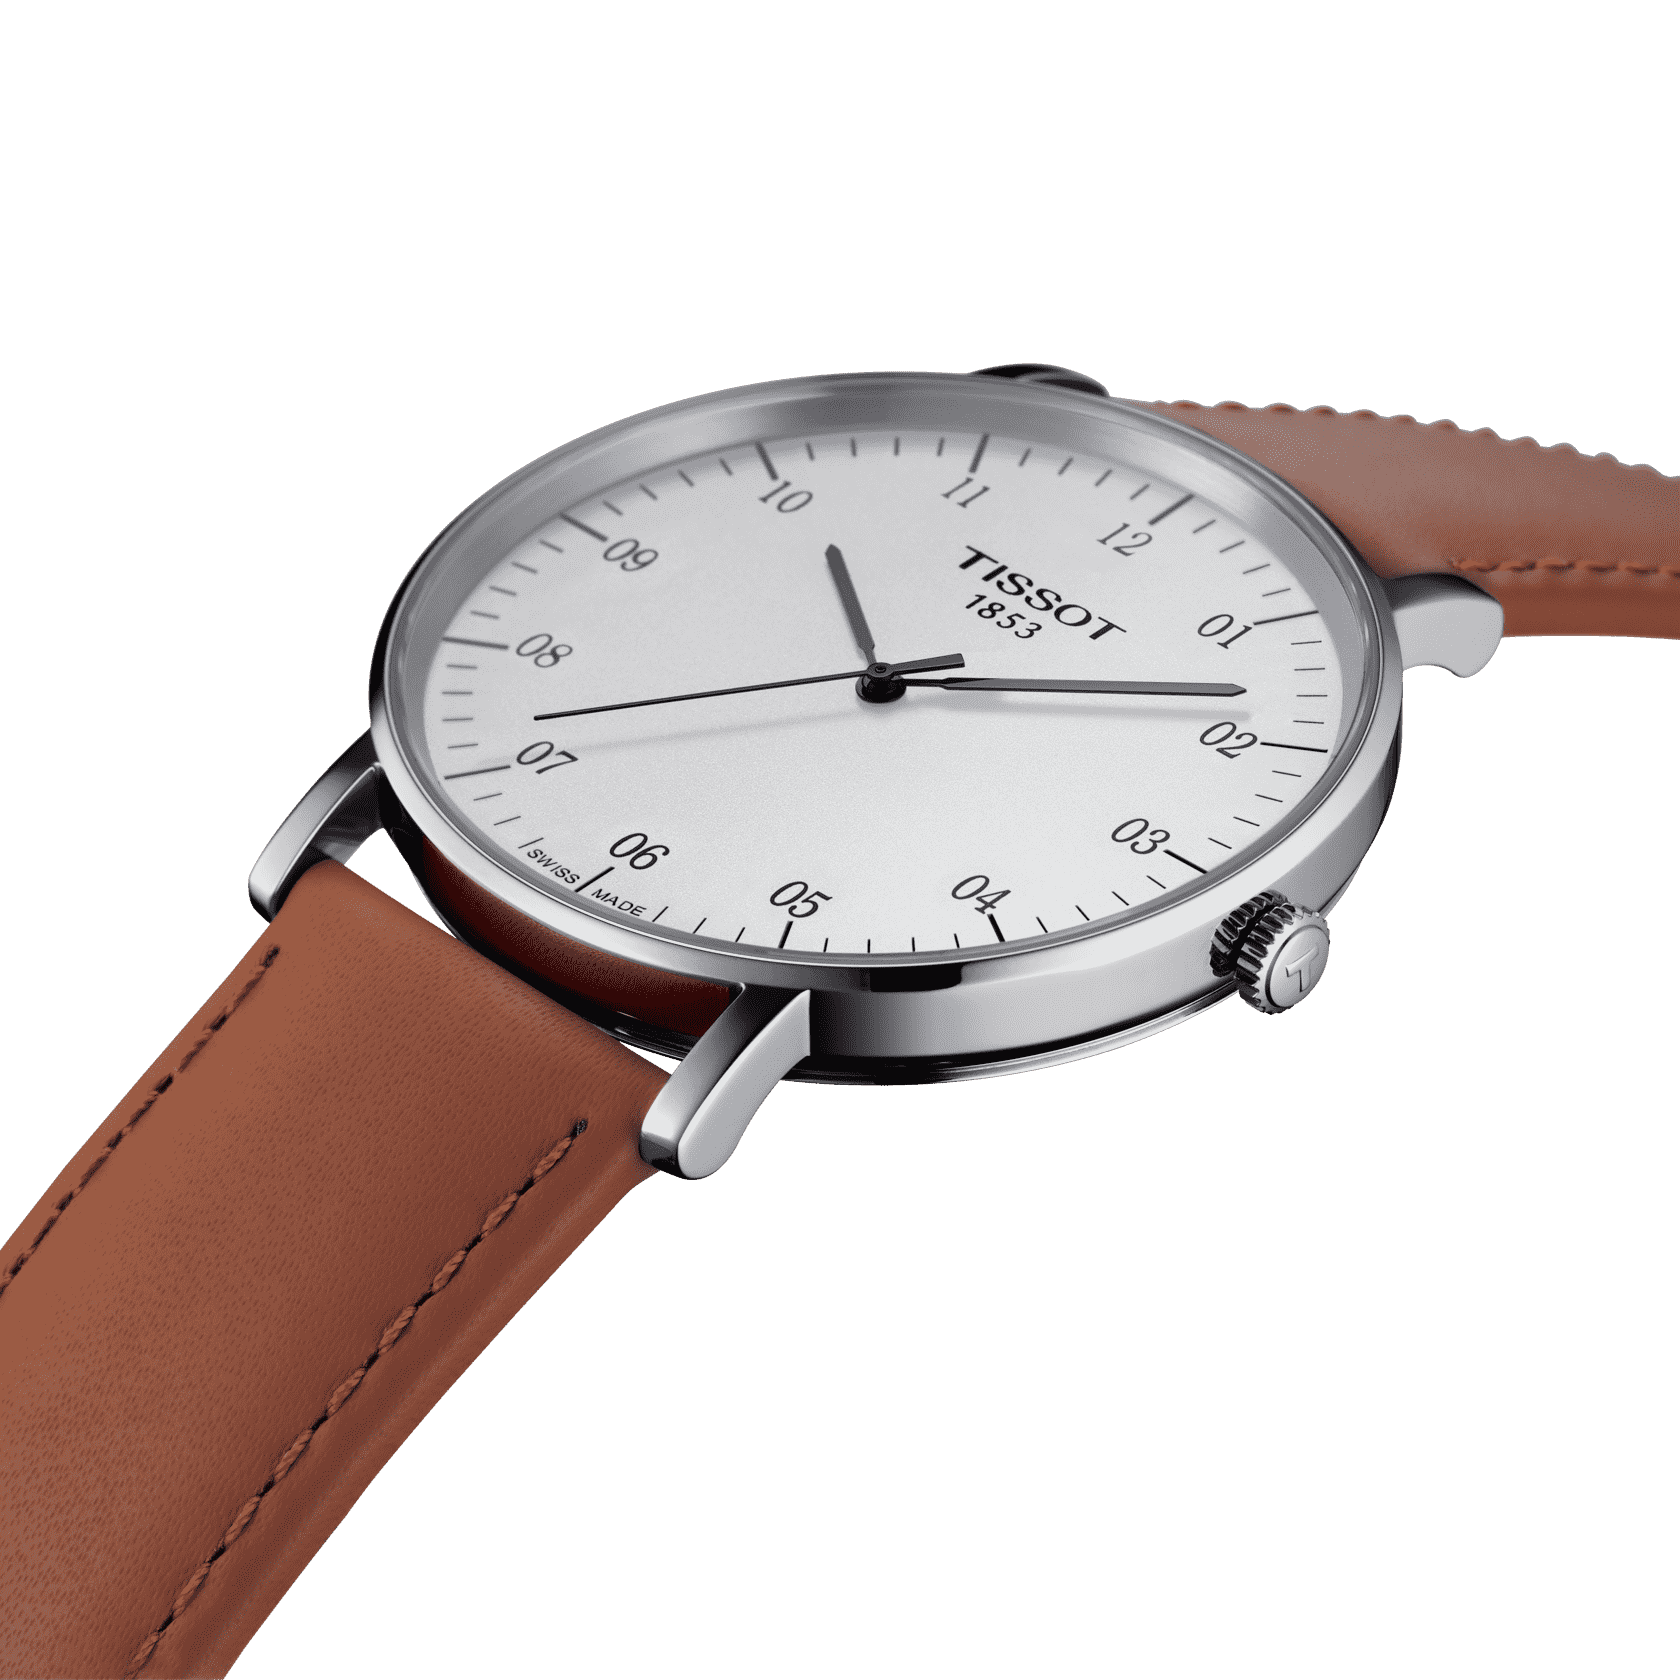 Replica Watches Leather Band